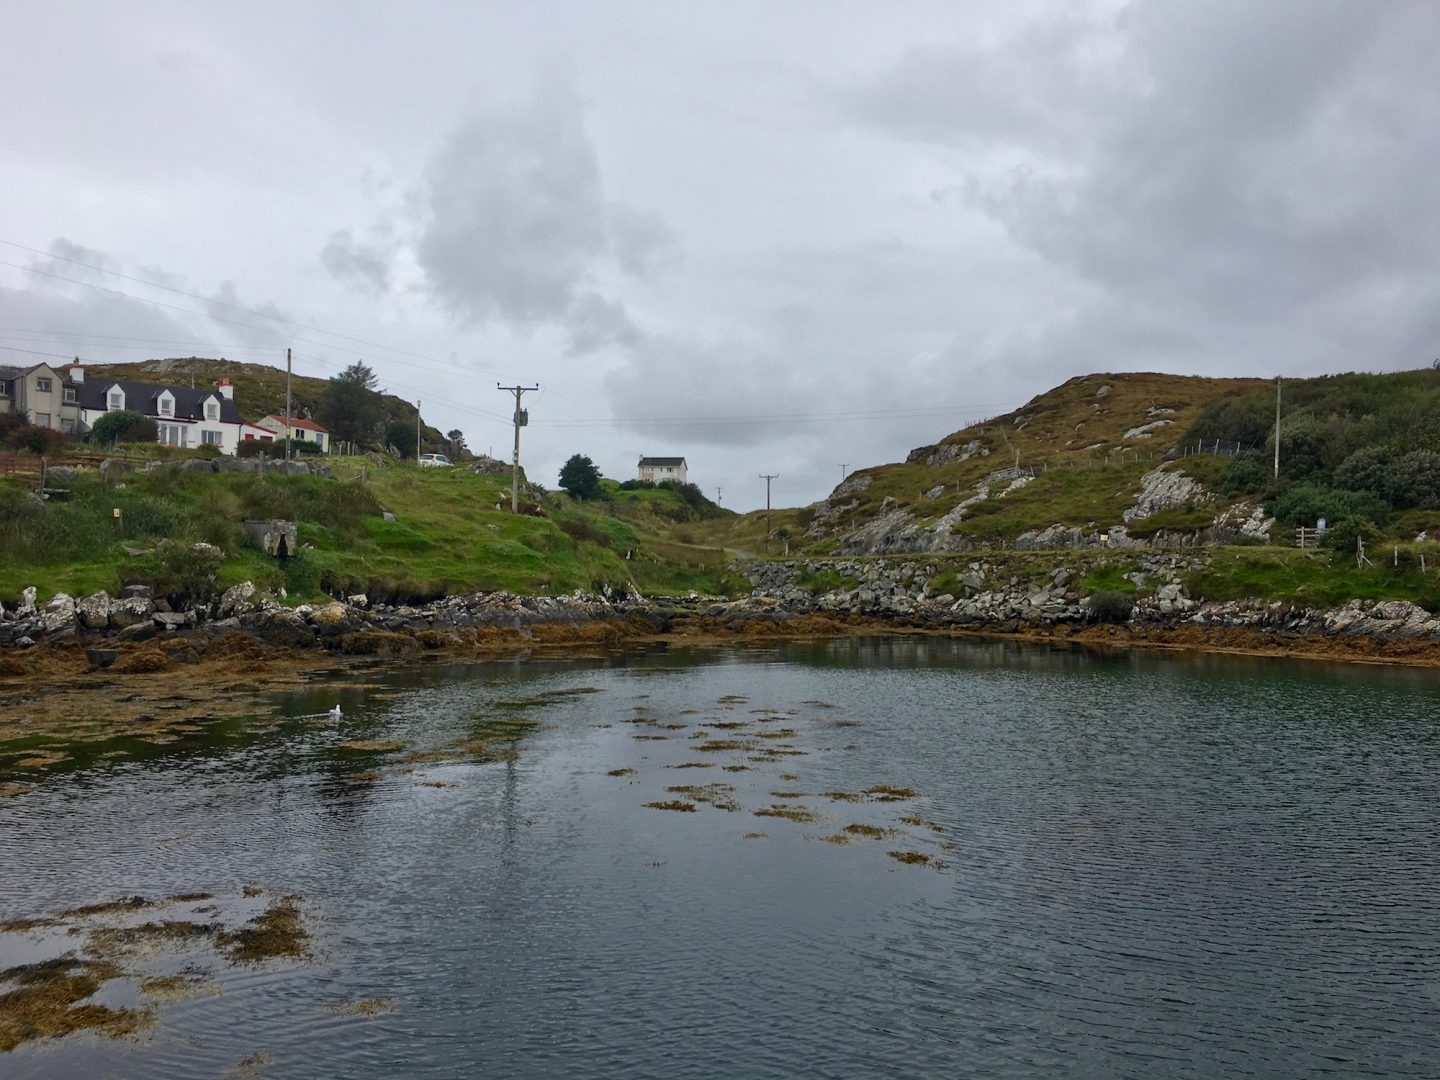 Houses on the Golden Road, Isle of Harris